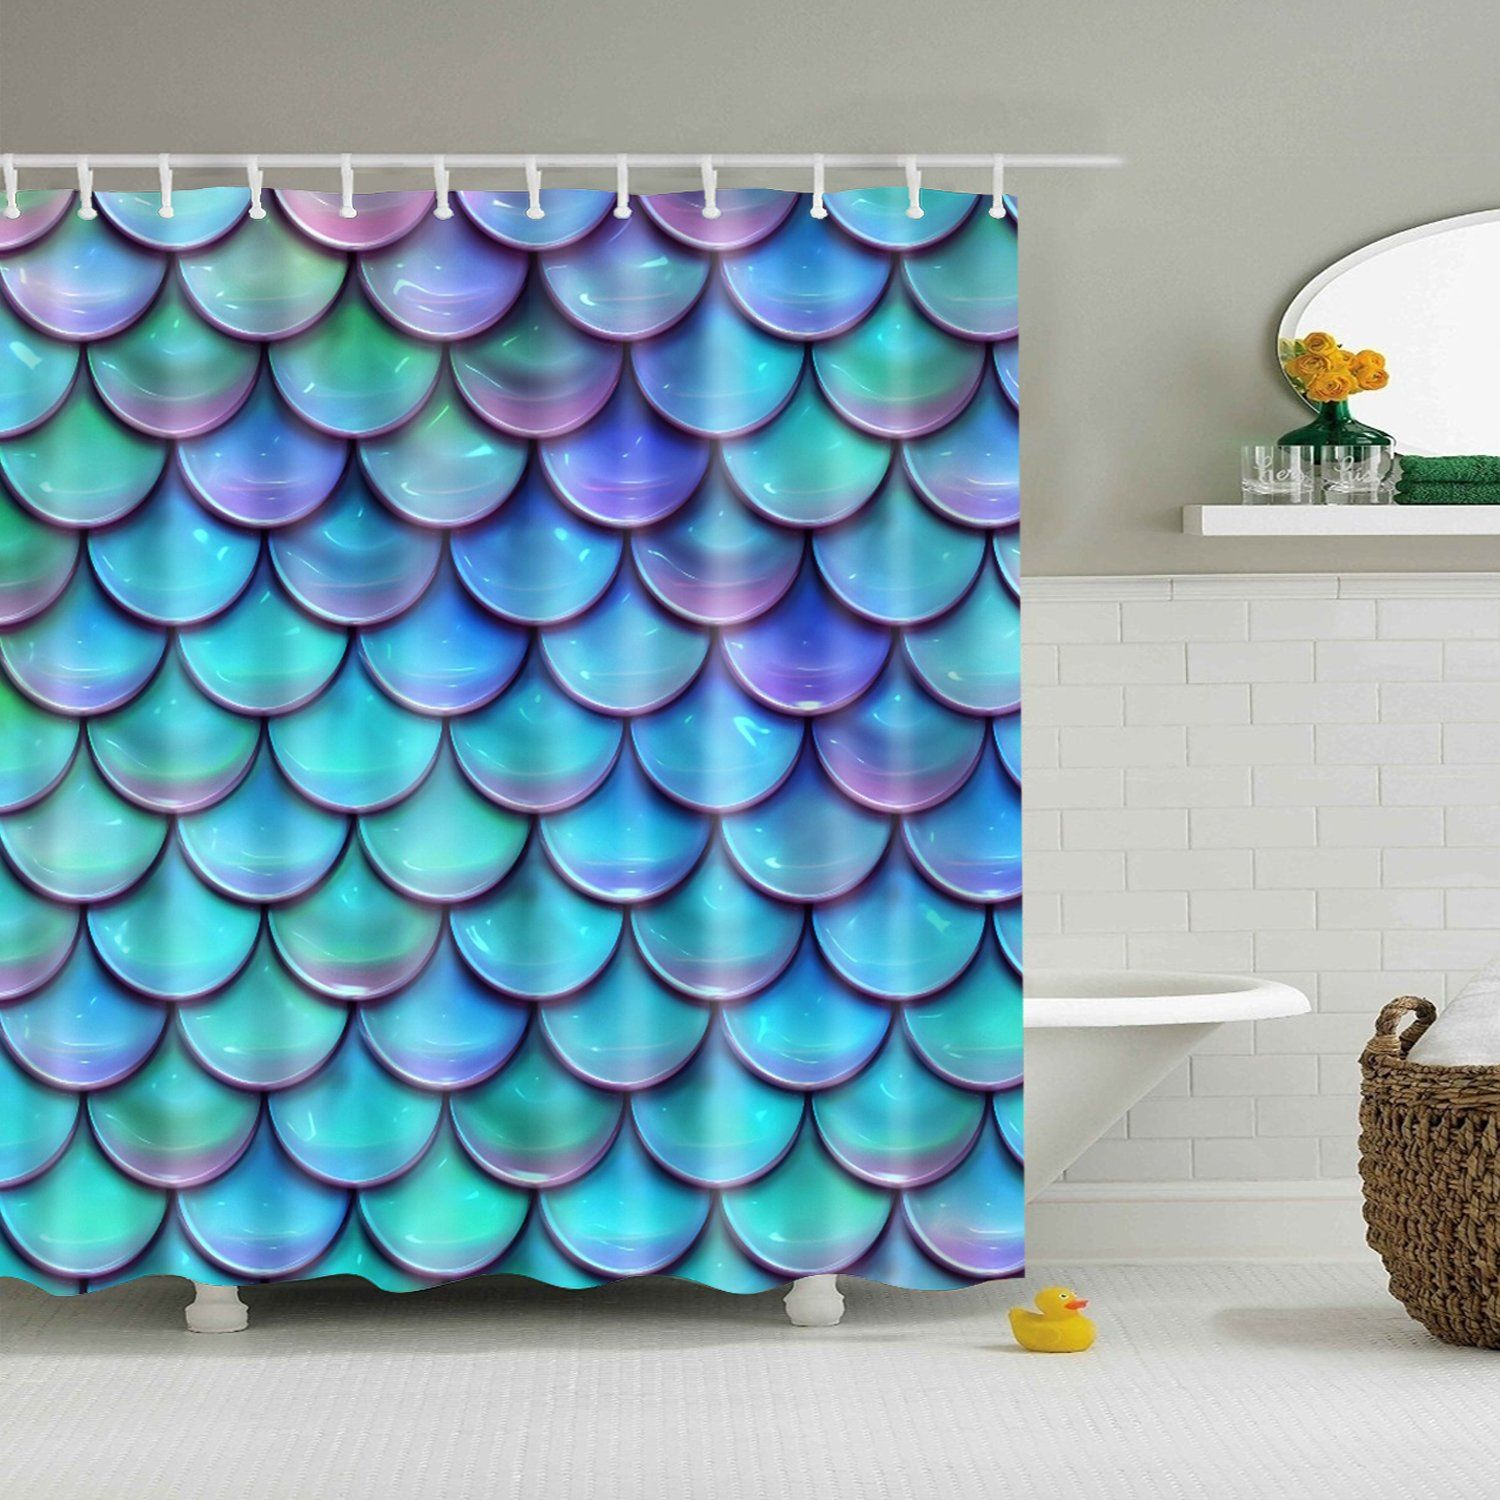 Holographic Mermaid Scales Shower Curtain Bathroom Decor In 2020